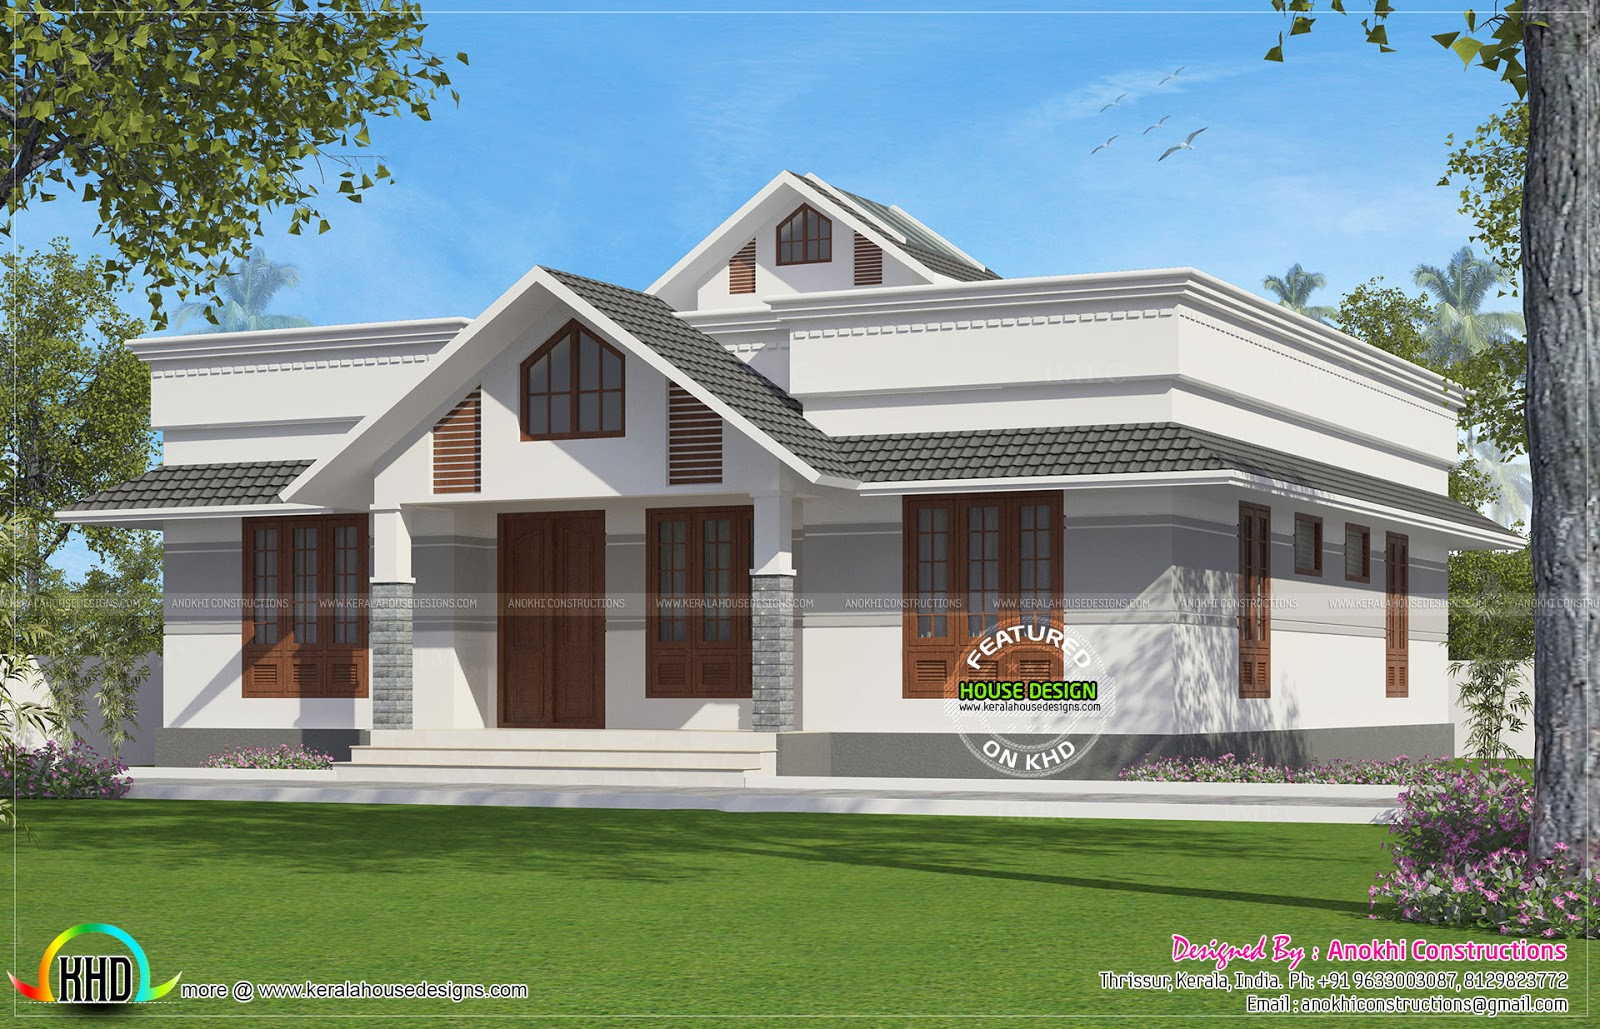 1330 square feet small house plan kerala home design and for Kerala style house plans with cost